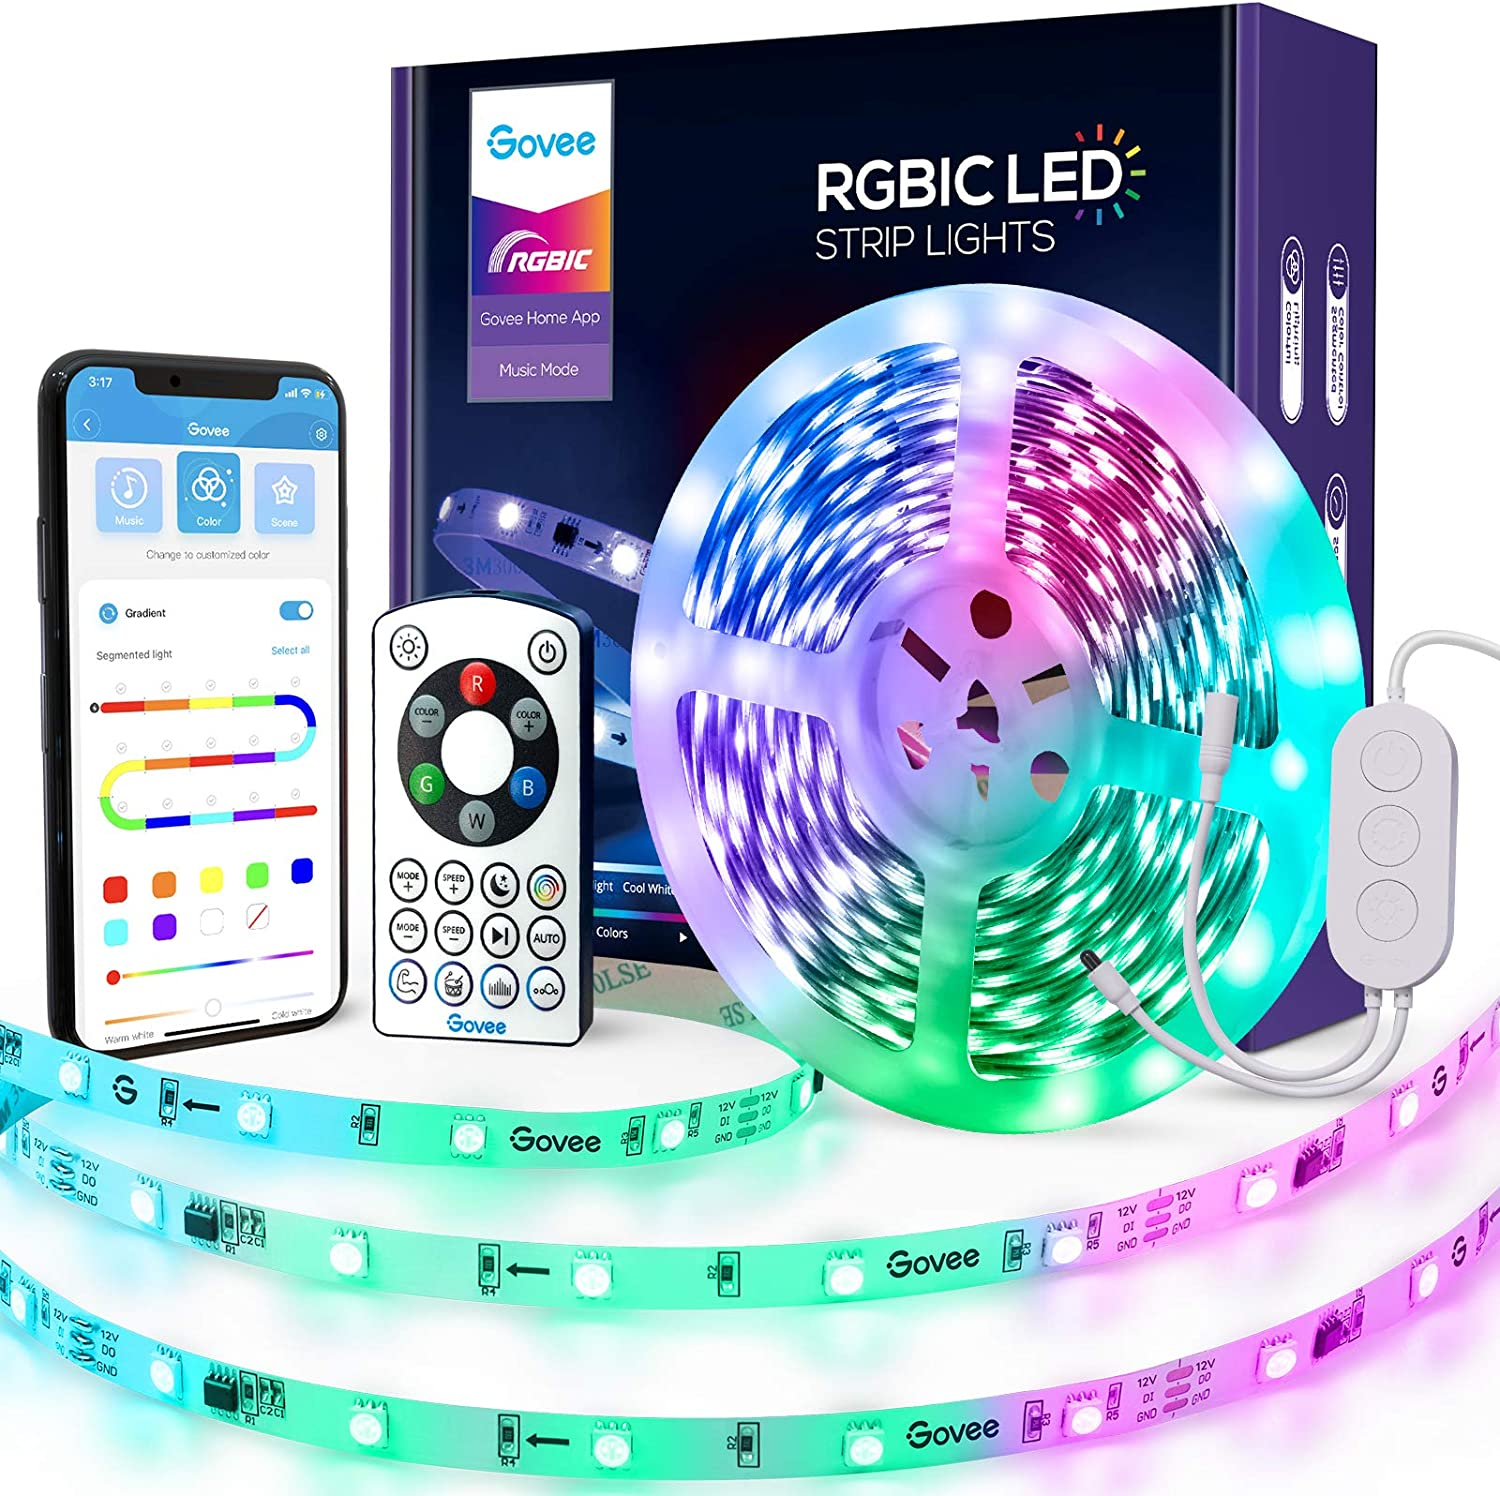 Govee RGBIC LED Strip Lights, Smart WiFi LED Light Compatible with Alexa, Google Assistant, APP Segmented Control, IR Remote Control Music Sync Lights for Bedroom, Office, Kitchen Decor, 16.4 Feet